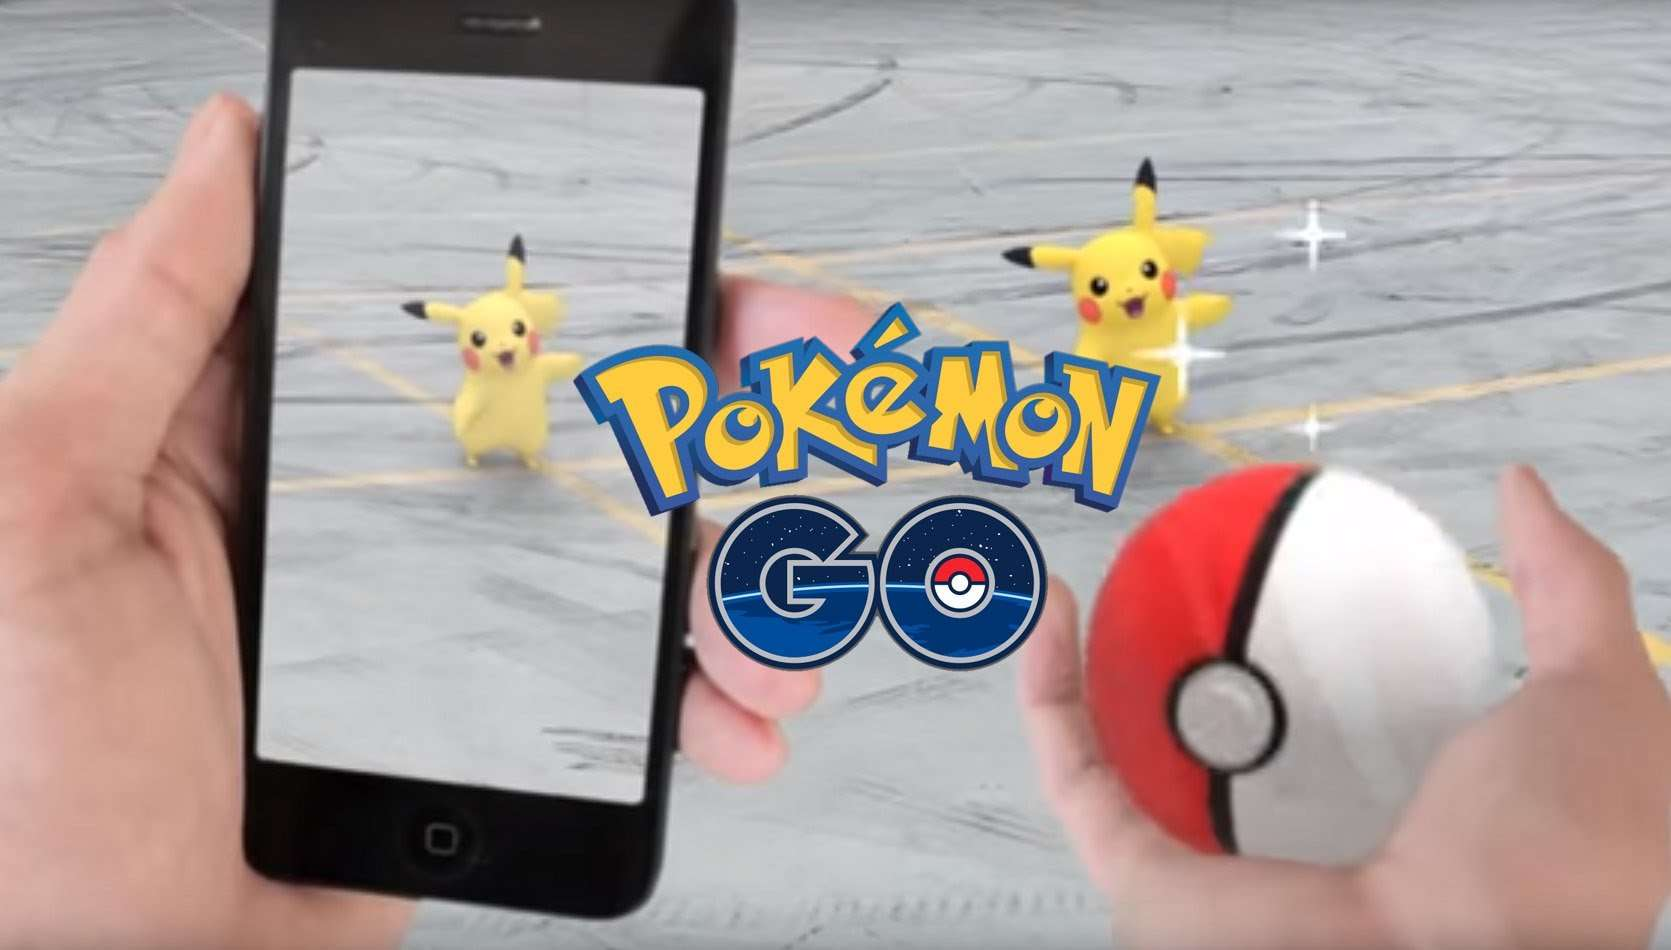 como instalar pokemon go en iphone